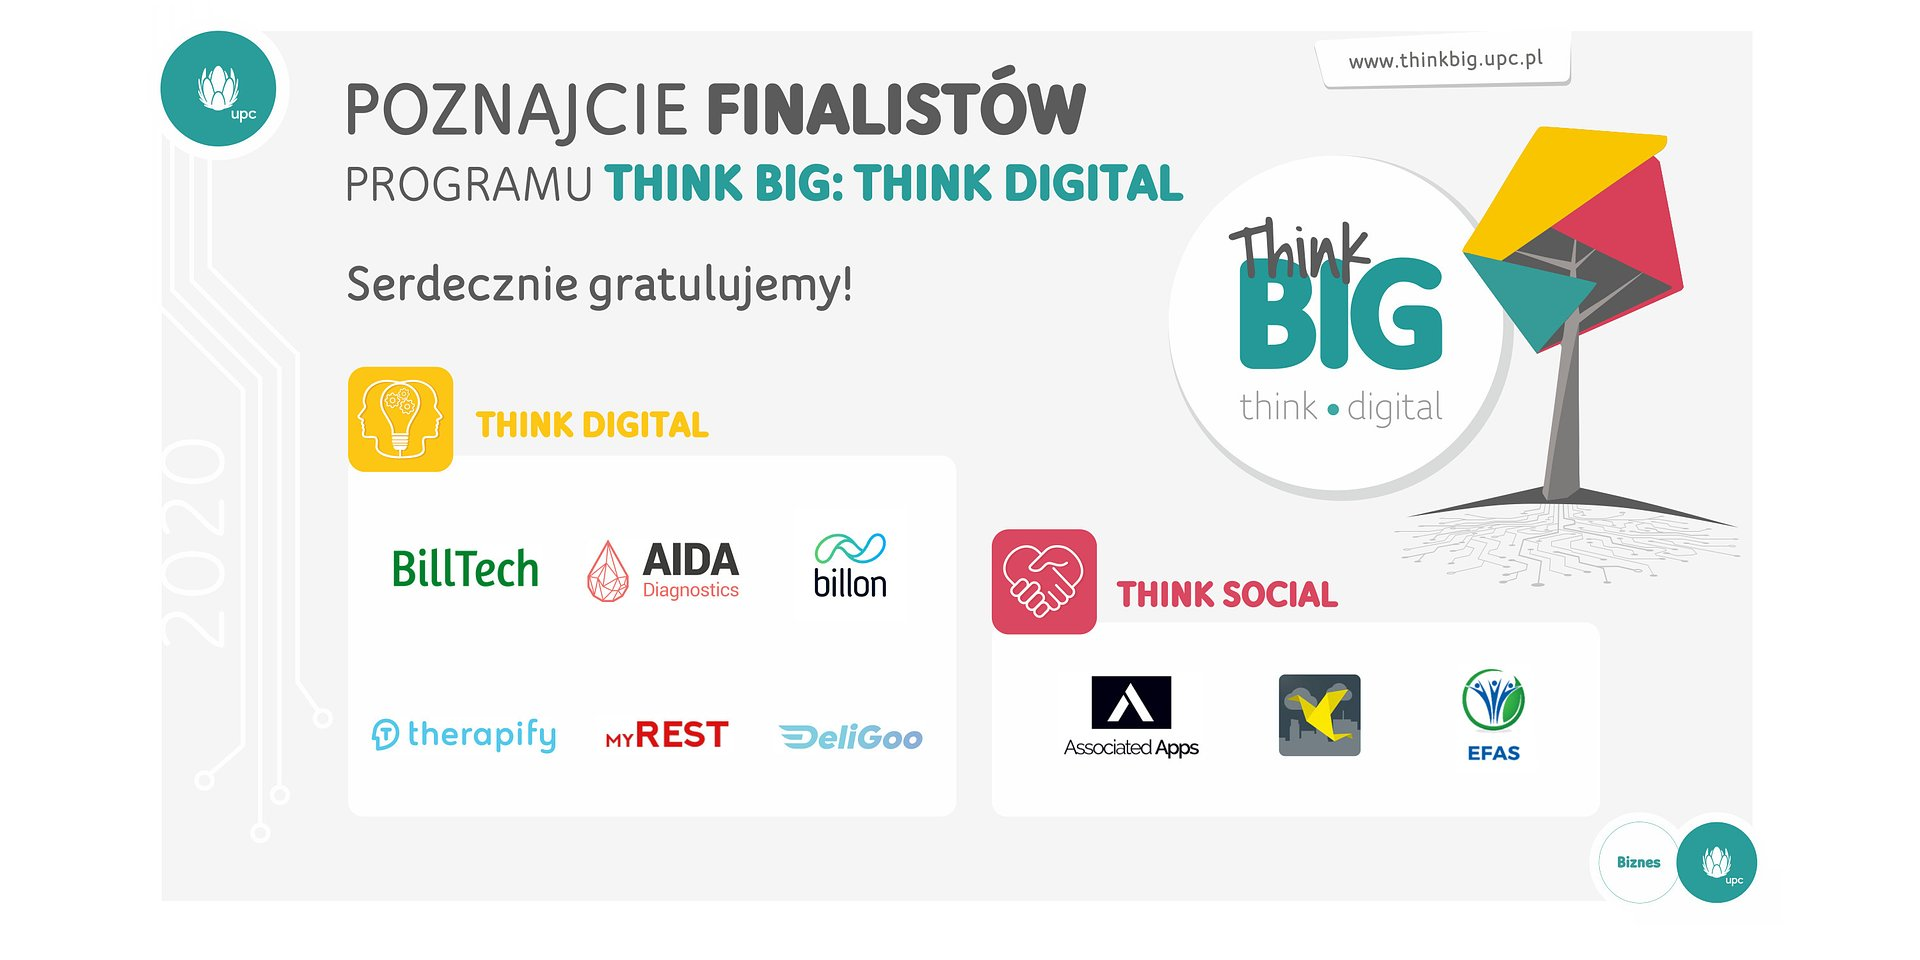 Znamy finalistów UPC Think Big: Think Digital